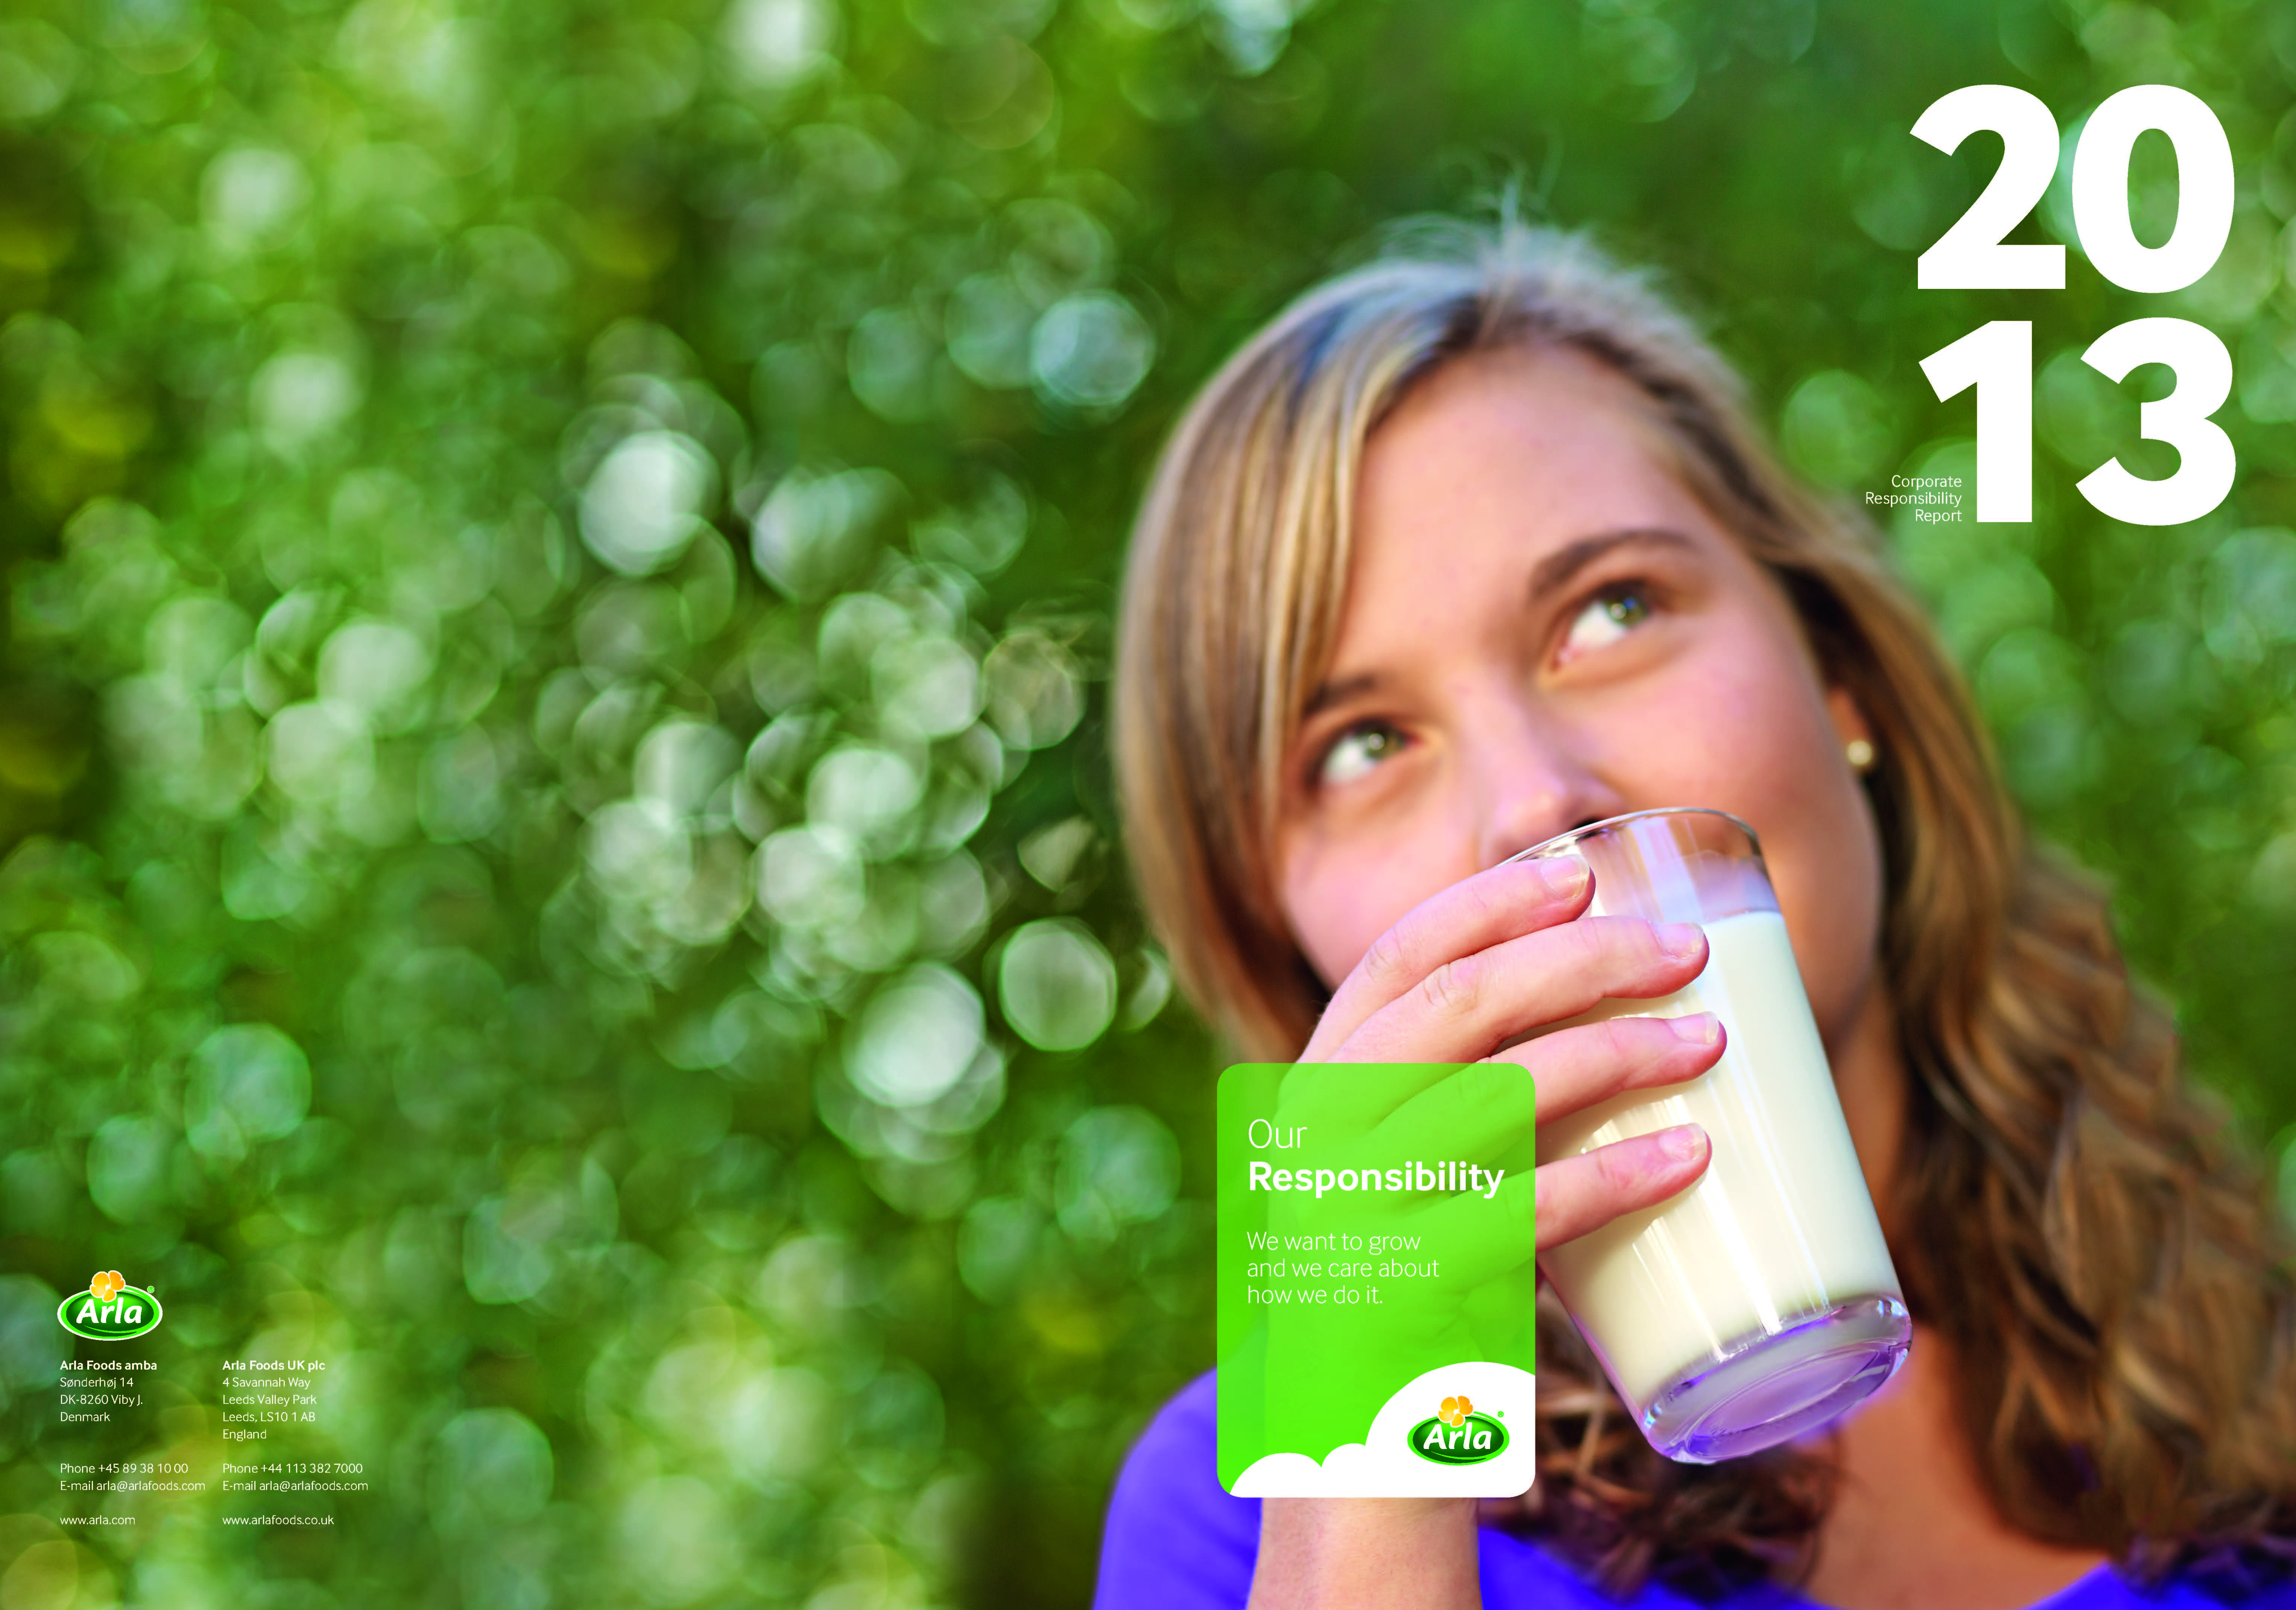 Arla's 2013 reports available to download